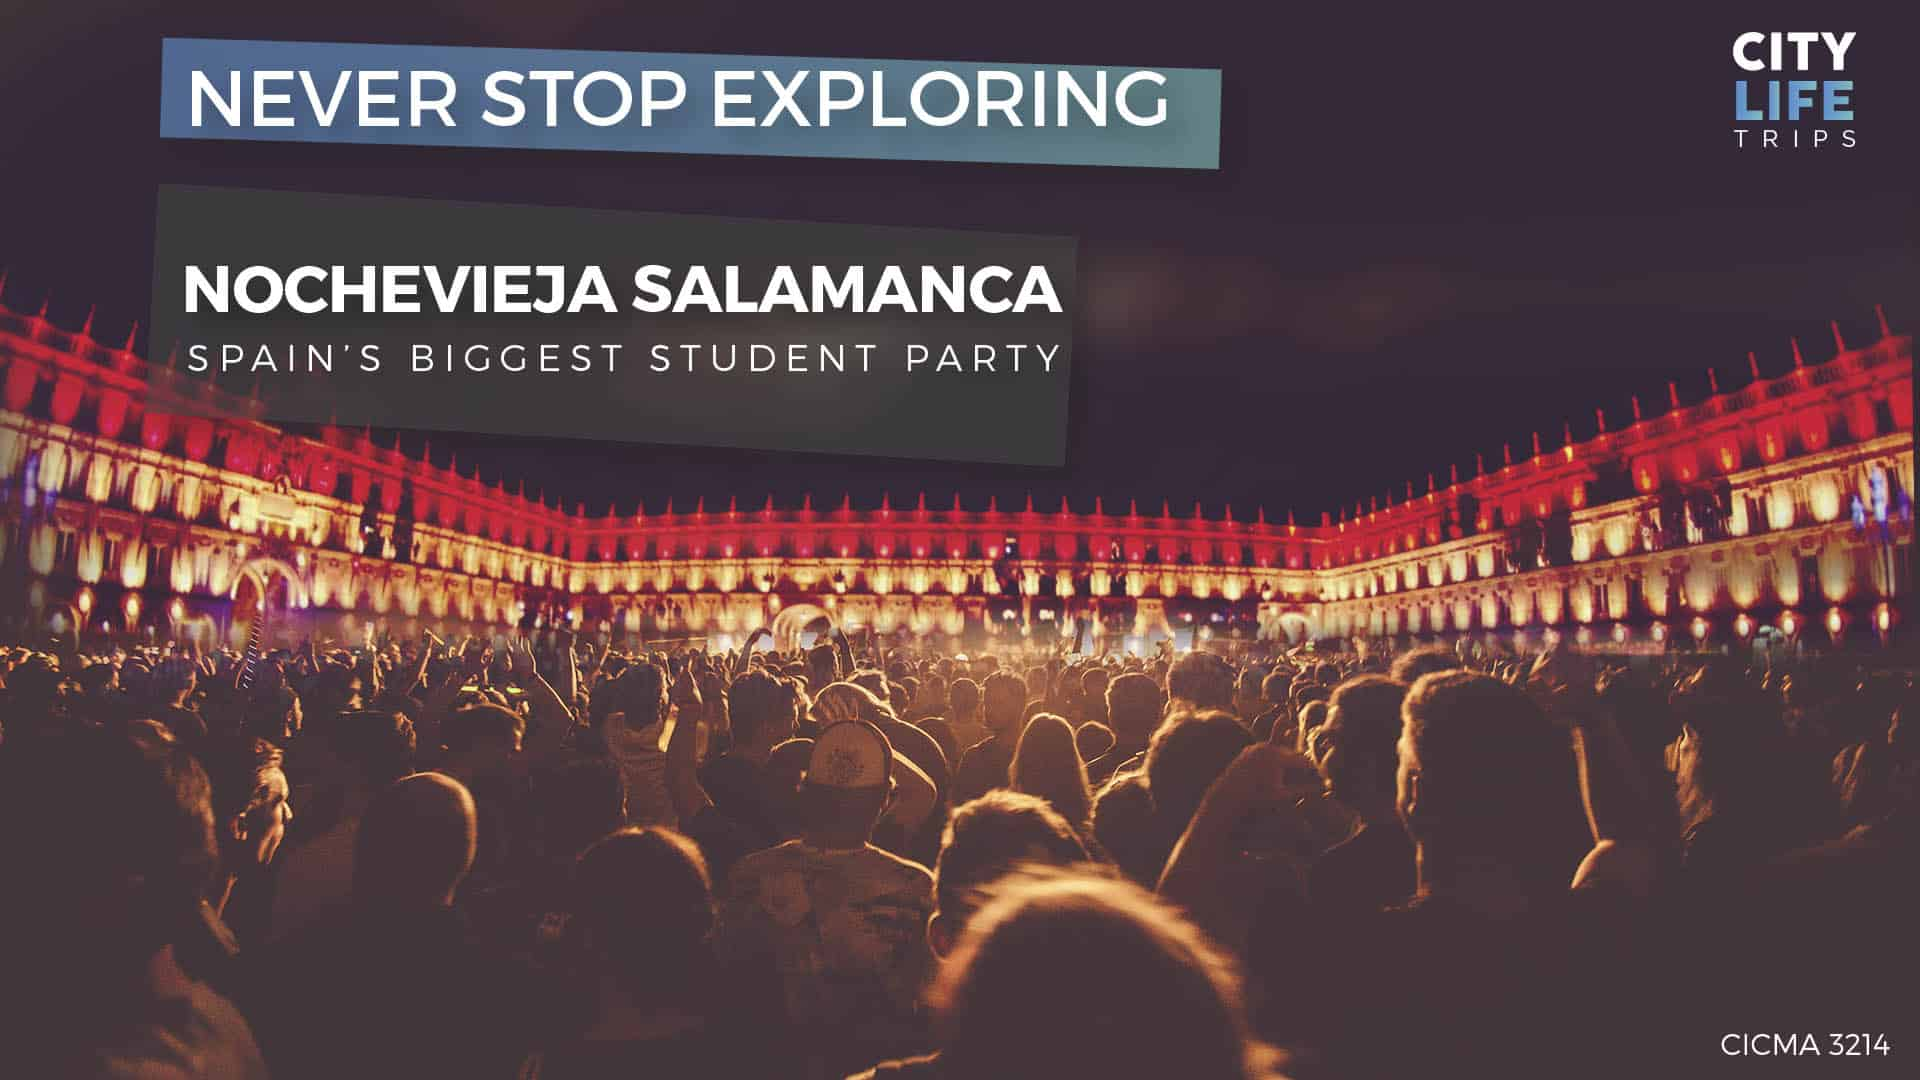 Nochevieja Salamanca – Spain's biggest student party